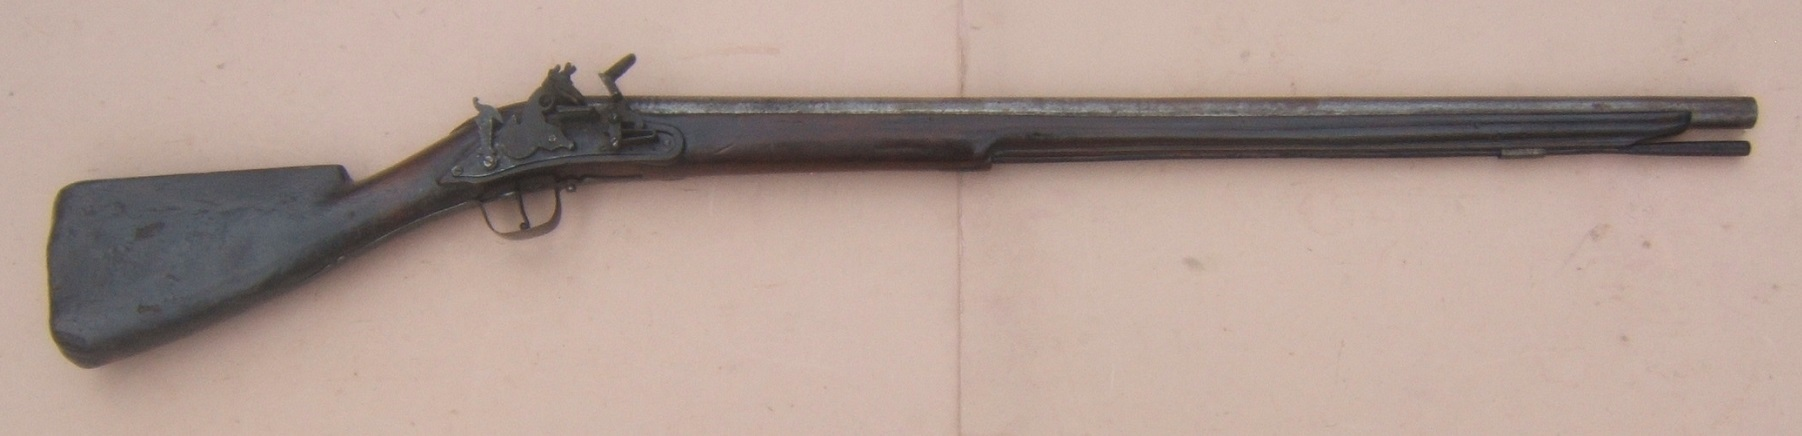 A VERY RARE ENGLISH/EARLY COLONIAL AMERICAN PERIOD ENGLISH DOGLOCK MUSKET, ca. 1650 view 1